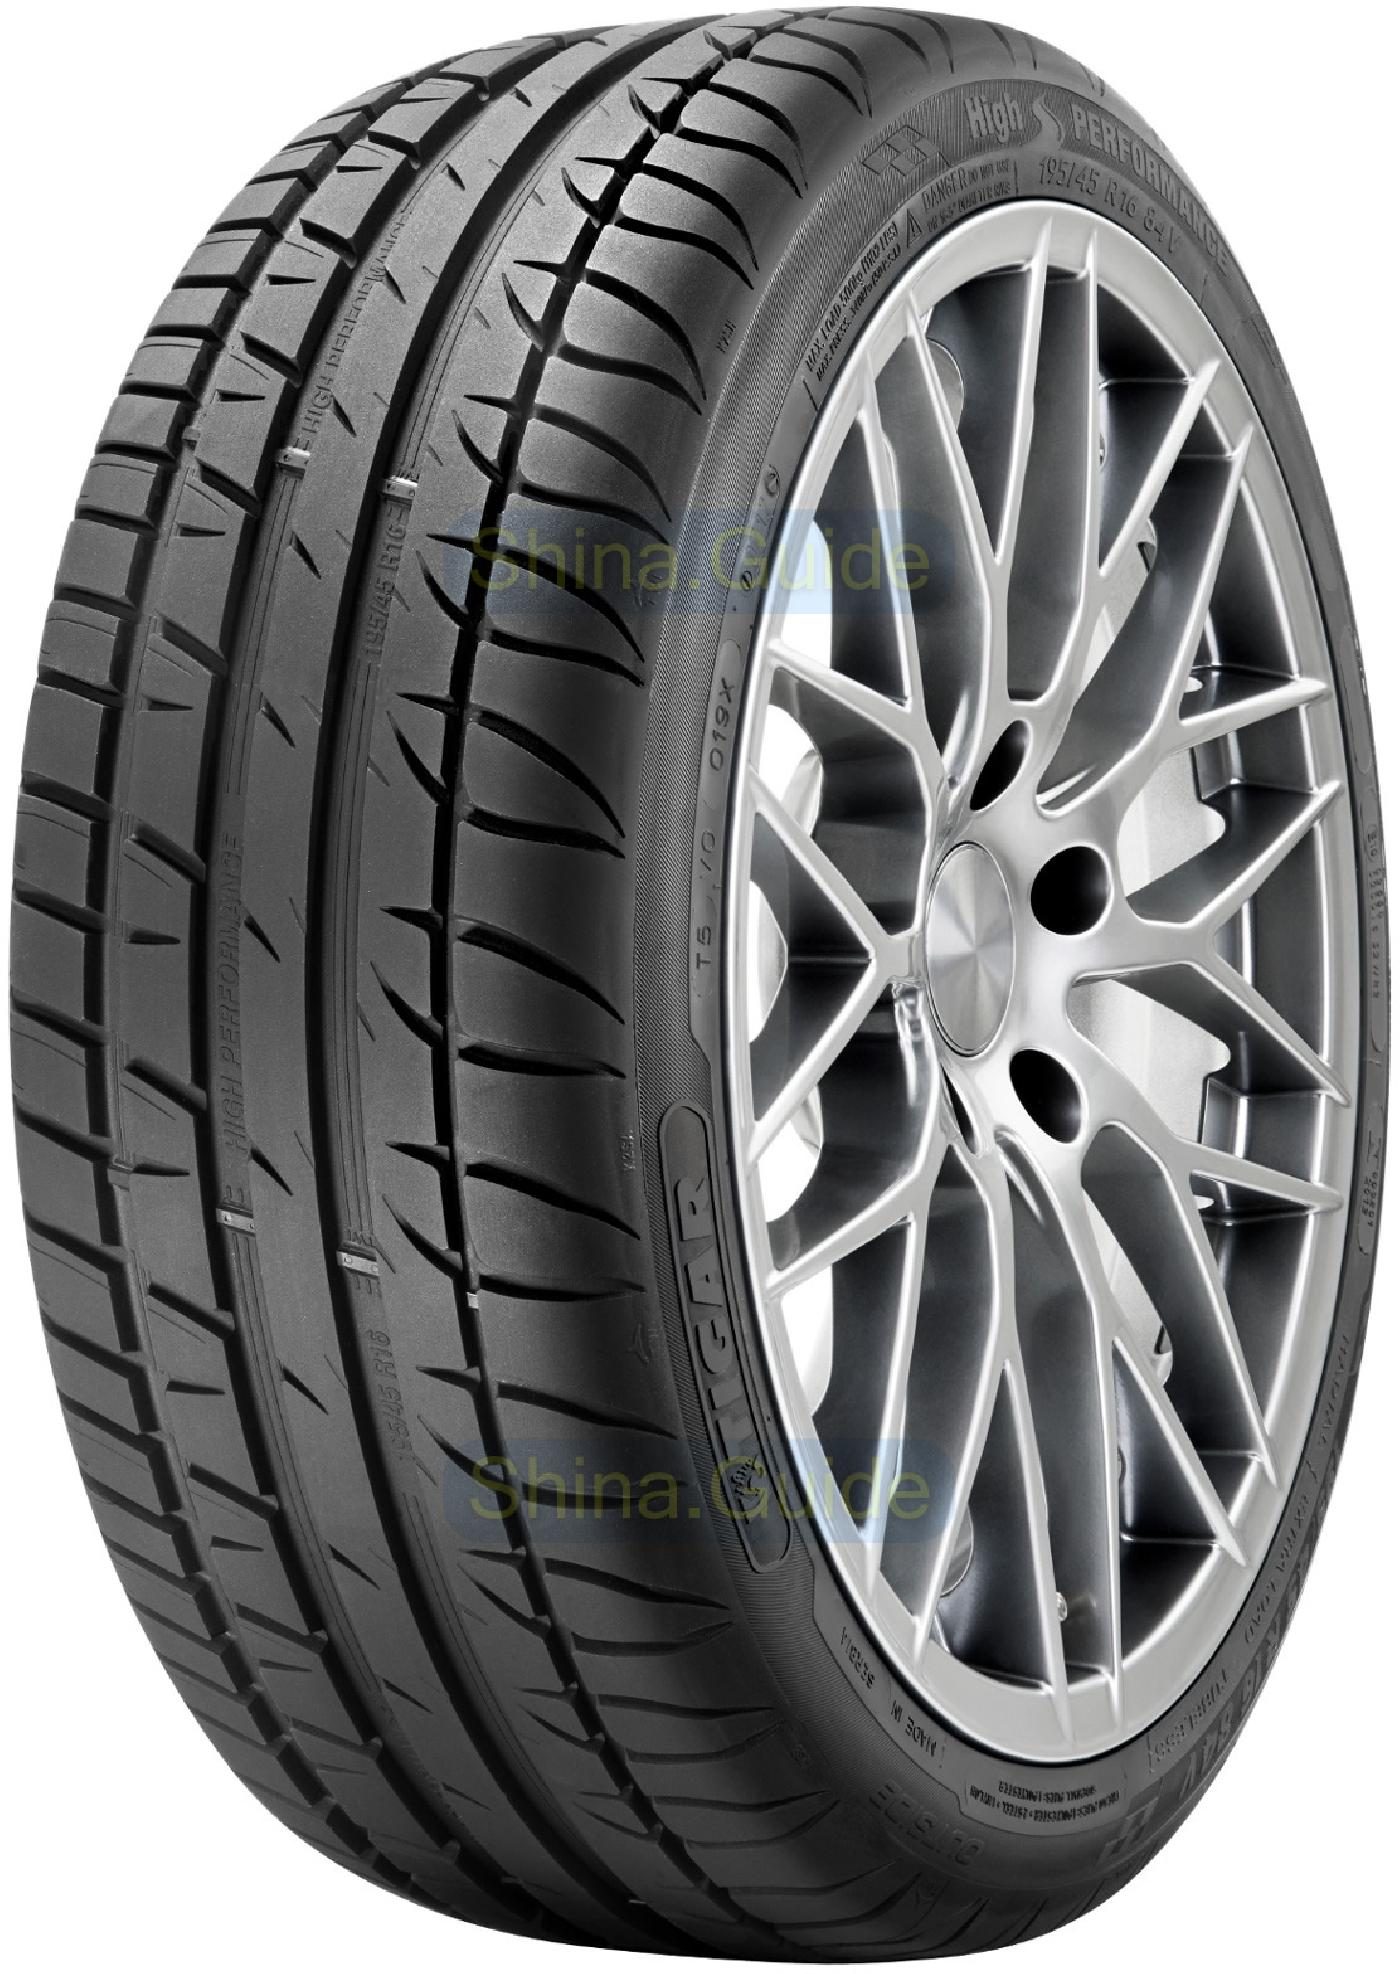 TIGAR HIGH PERFORMANCE 205/50 R17 93W